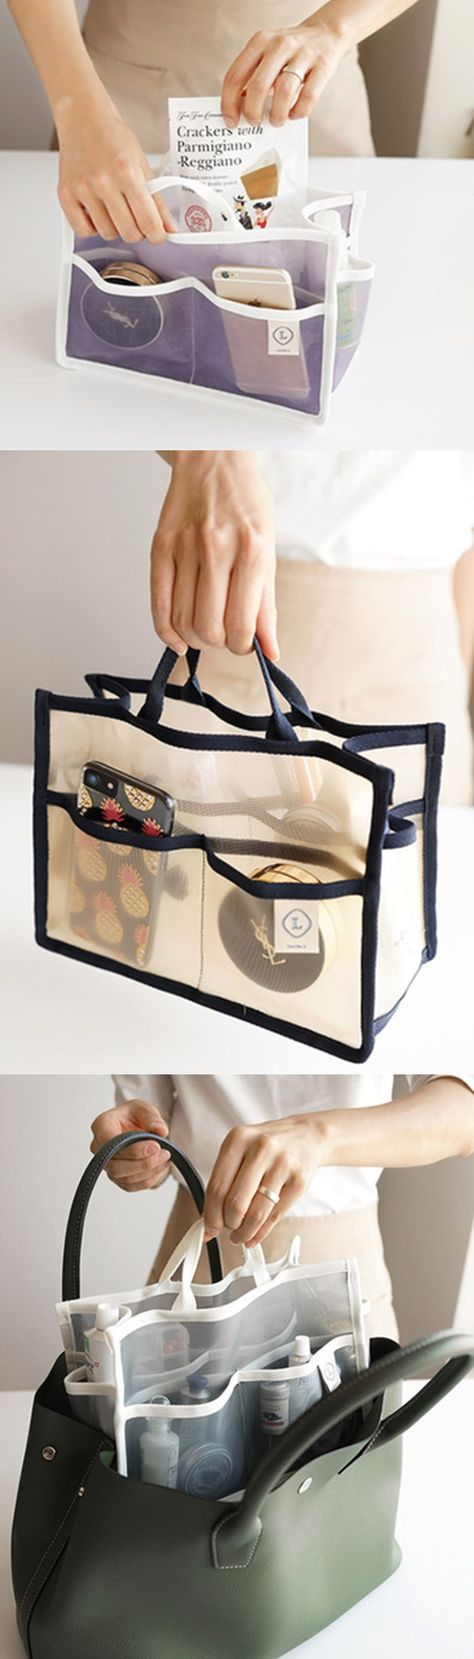 The Medium Mesh Purse Organizer makes it easy and fun to organize your items while keeping your purse clean and tidy! Mesh material also enables you to take them to a pool or a spa!